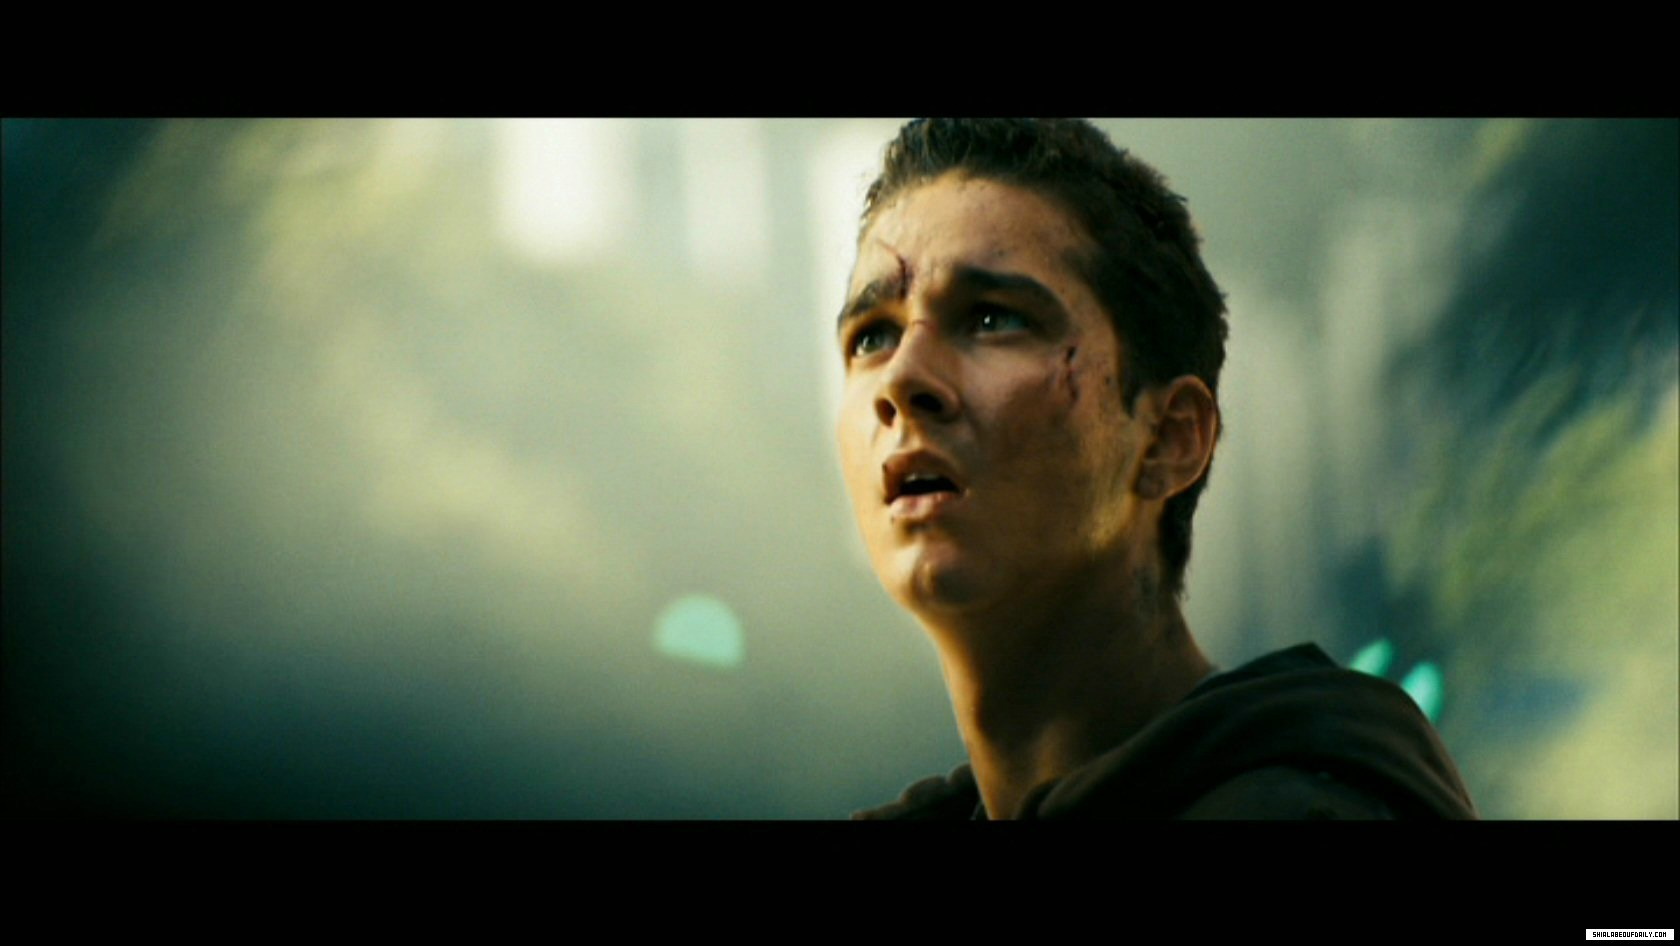 Shia LaBeouf Images In Transformers HD Wallpaper And Background Photos